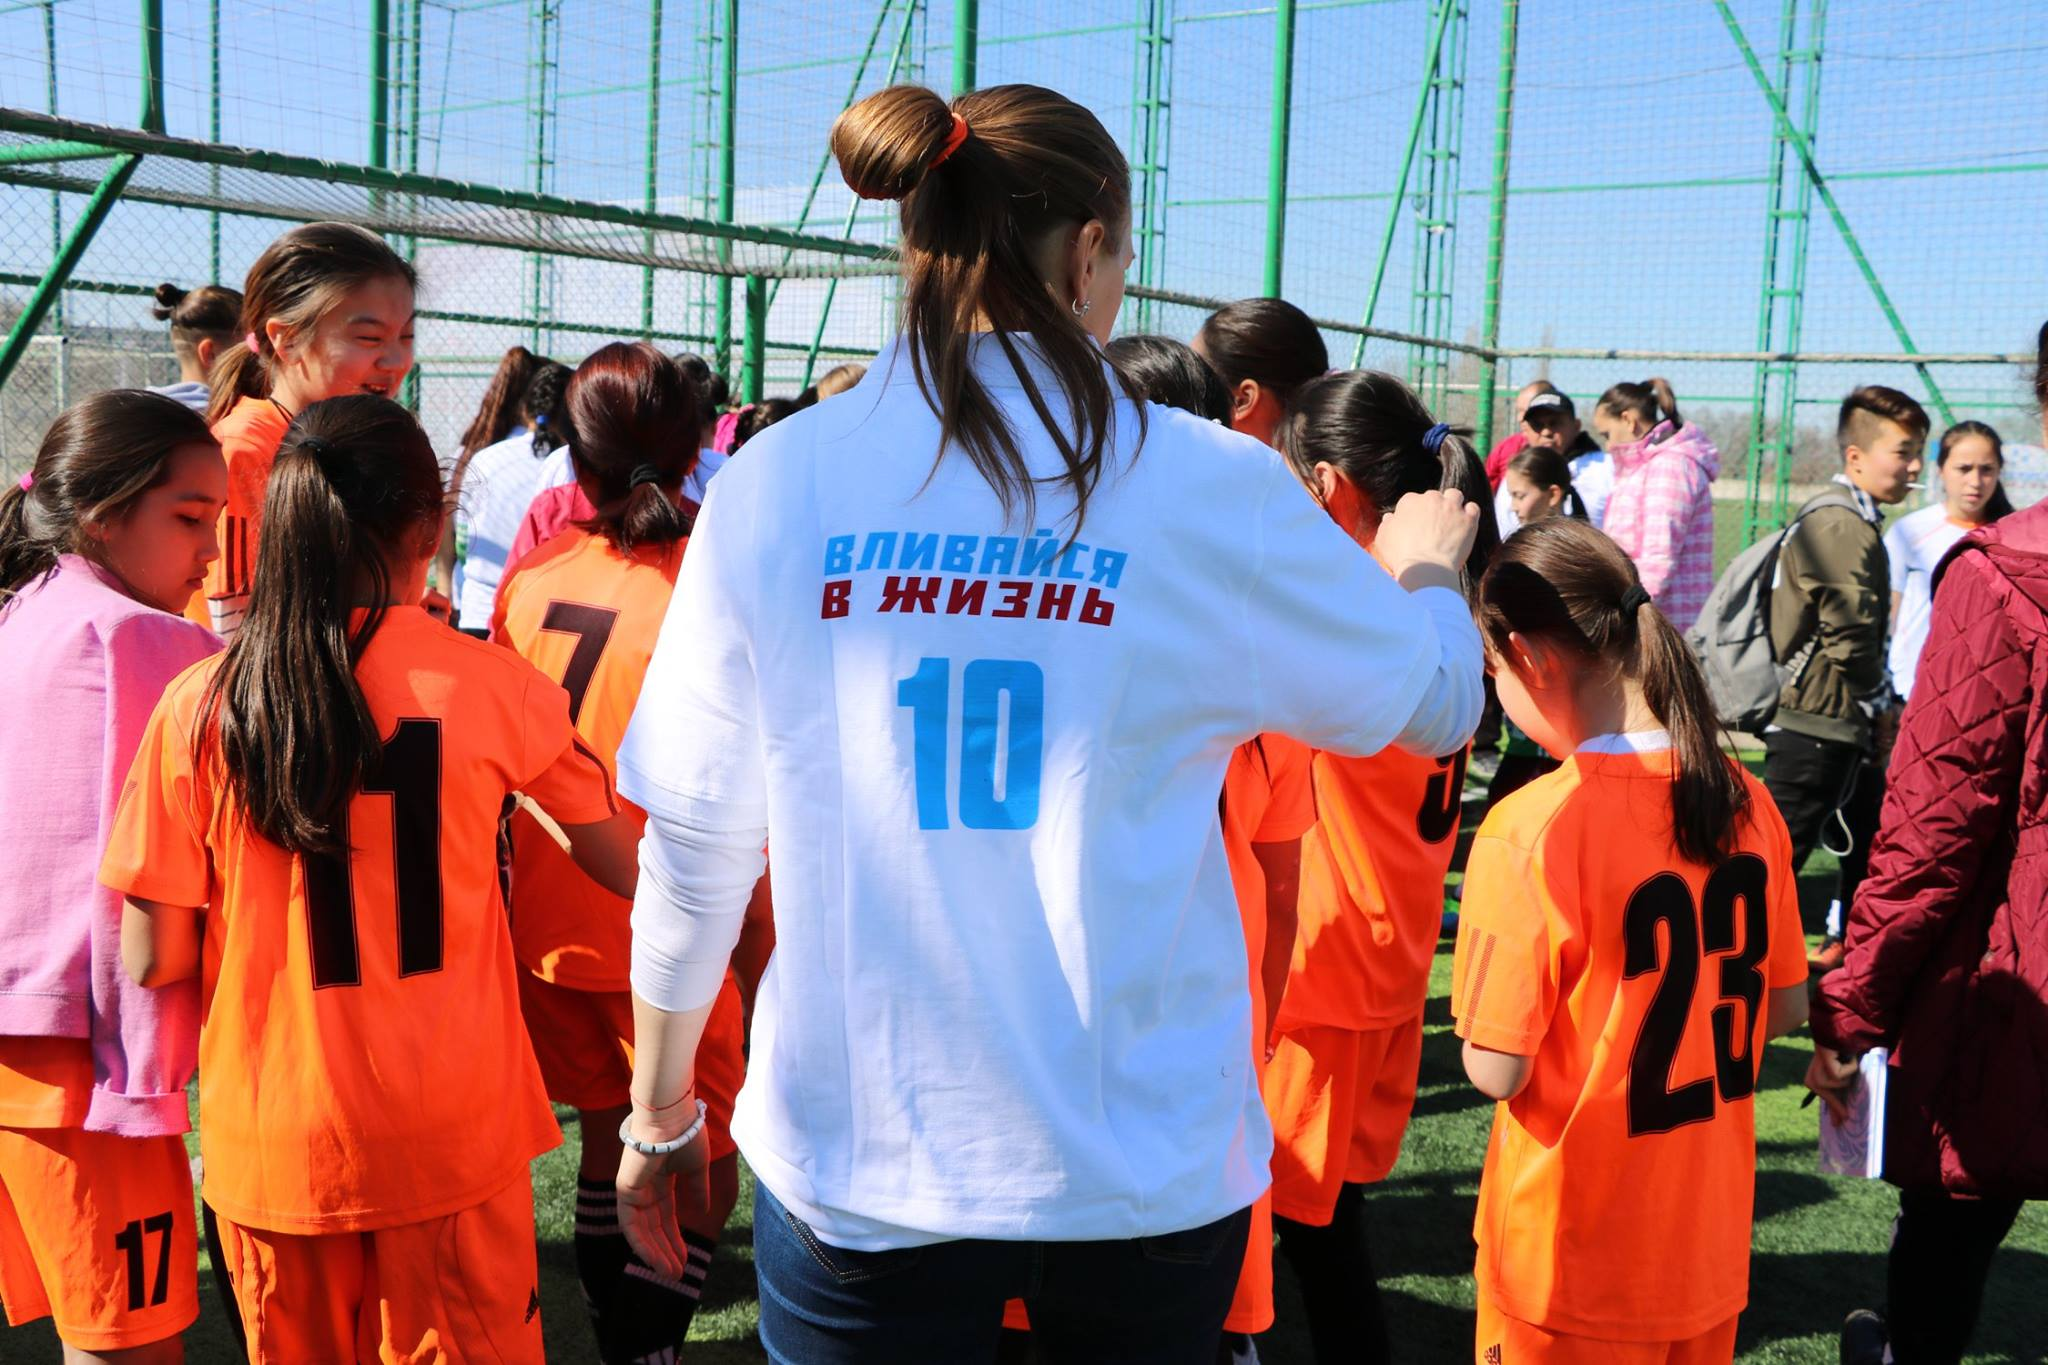 UNODC supports Women's football against violence, crime and drug use in Kyrgyzstan